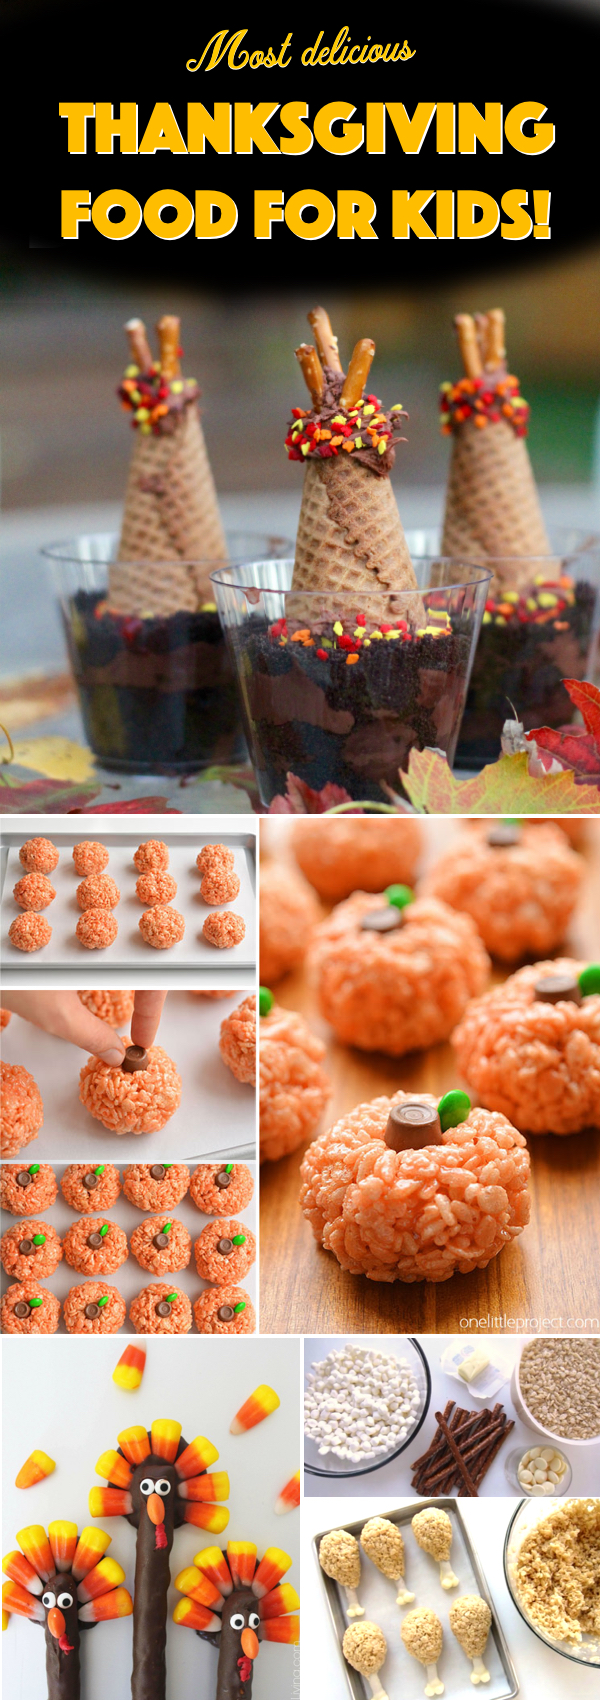 25 Adorable Recipes to Whip up The Most Delicious Thanksgiving Food for Kids!